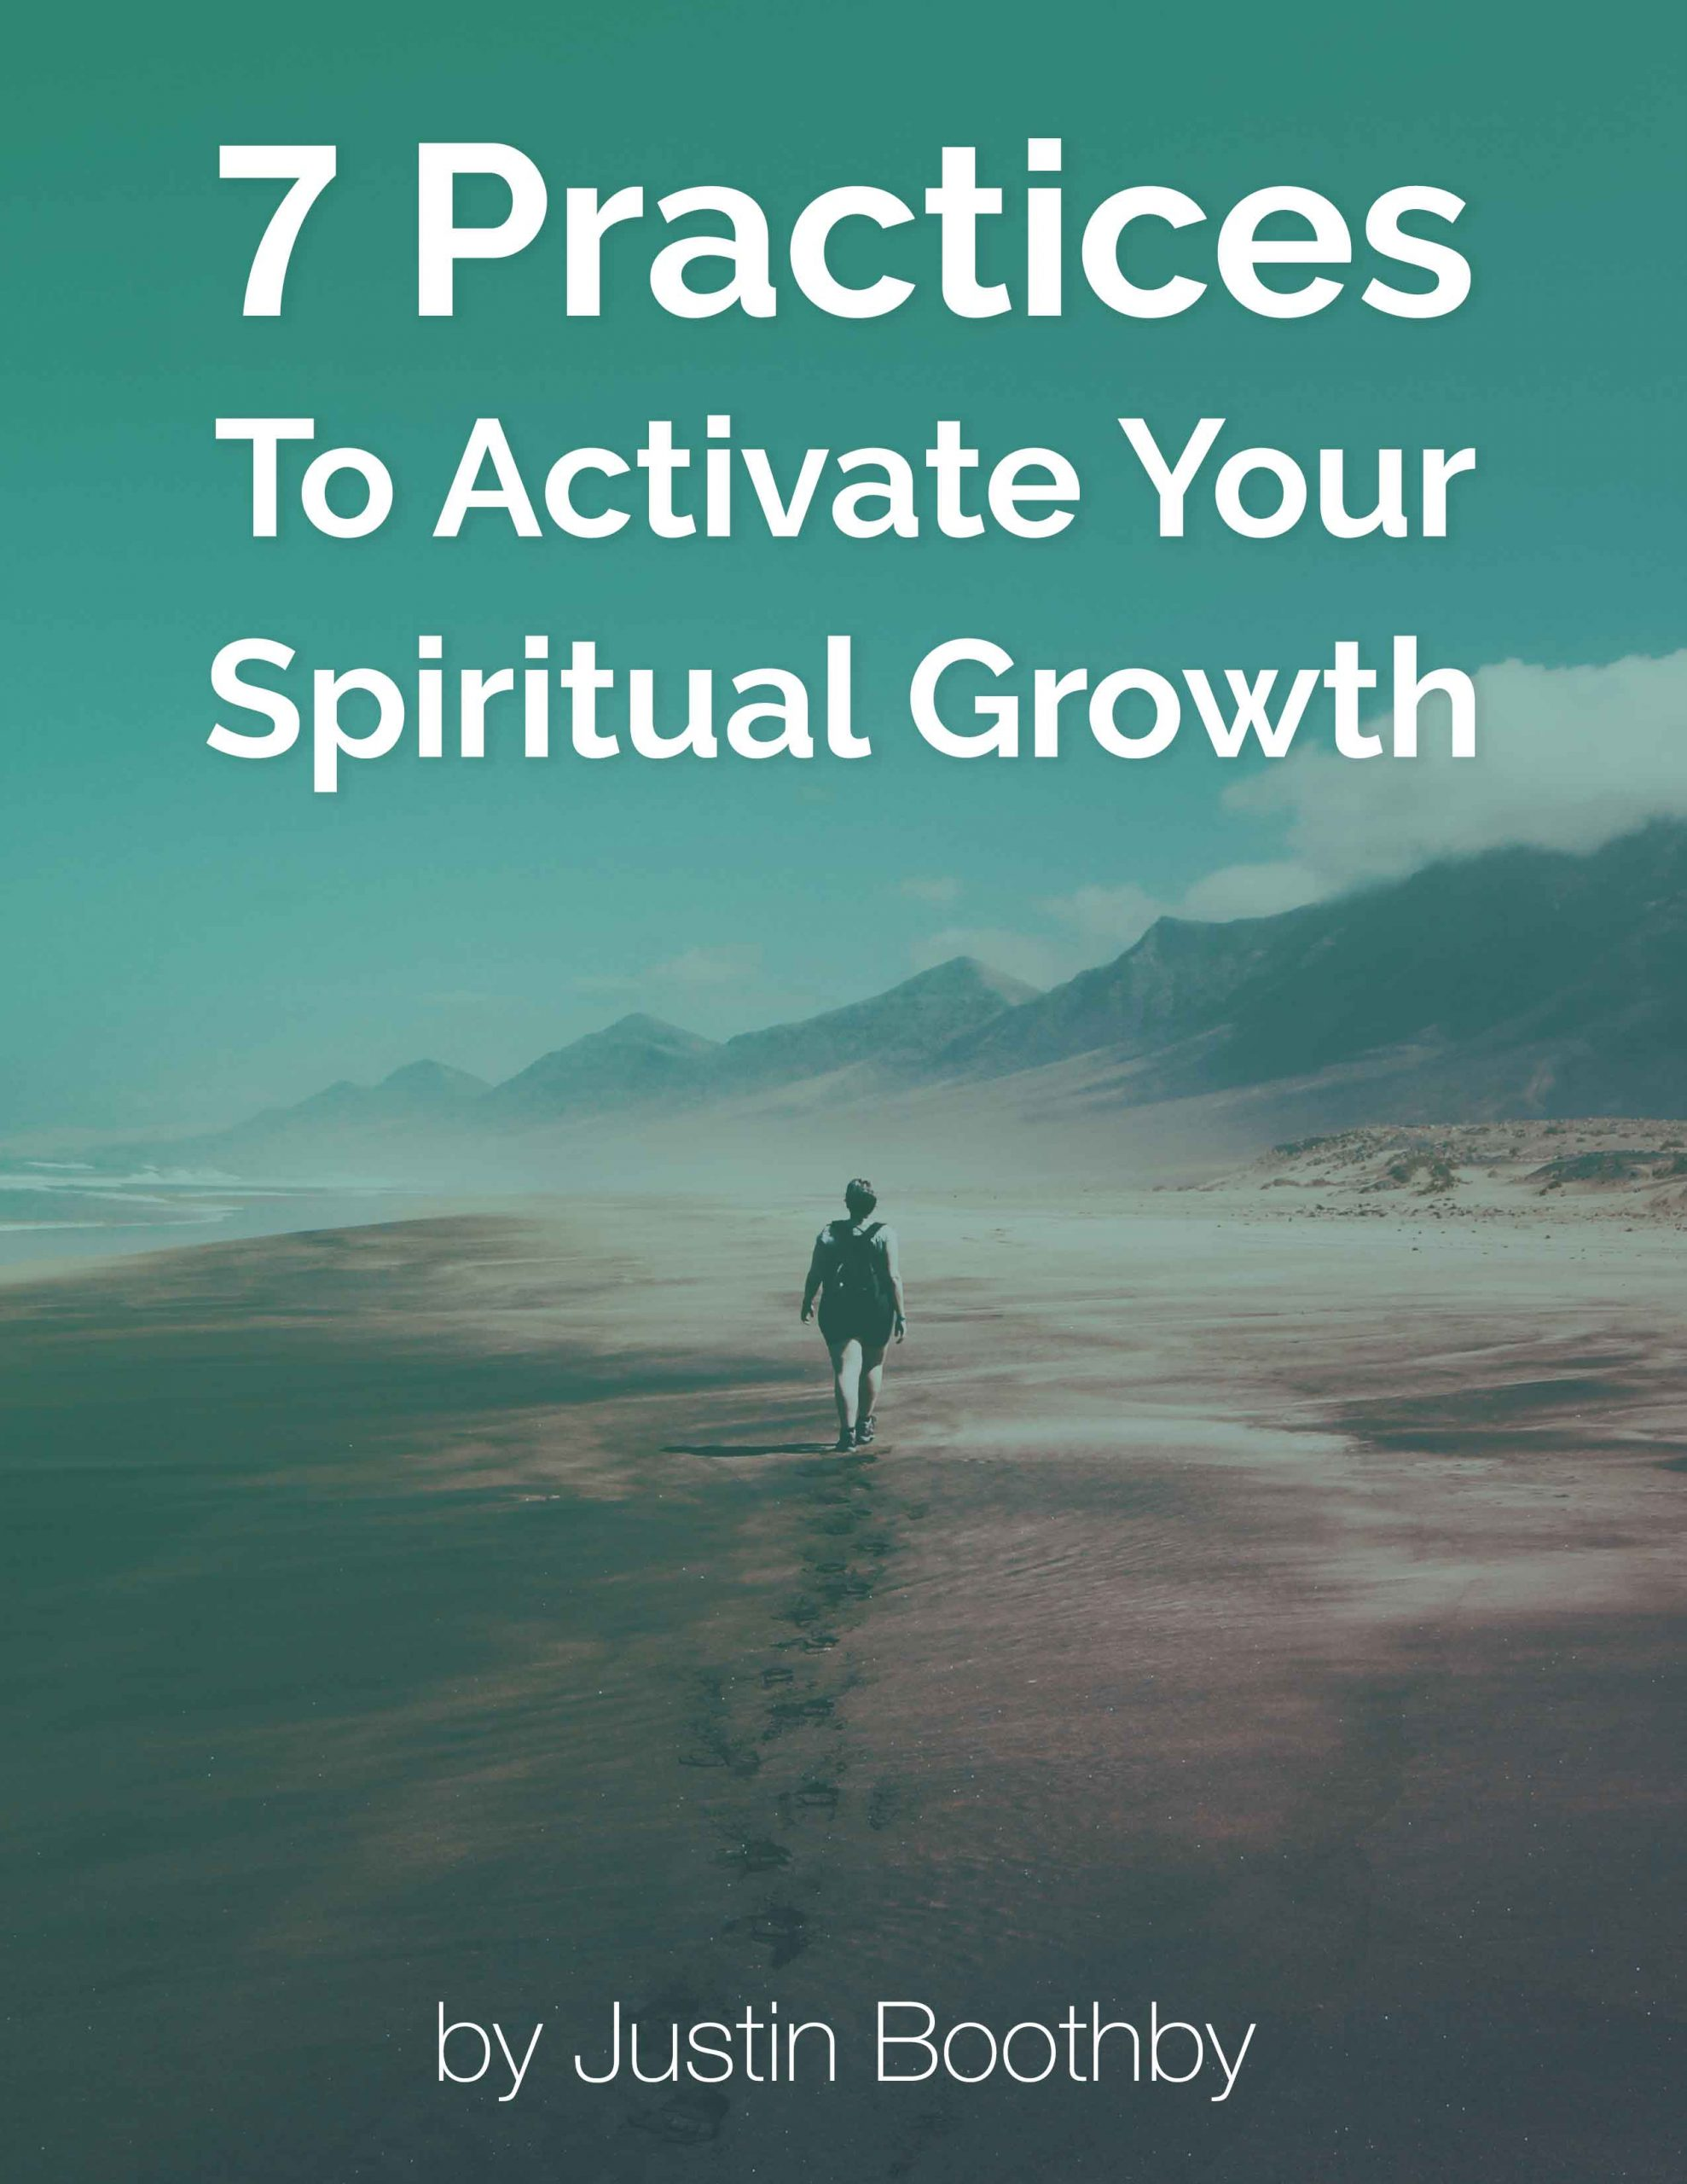 7 practices to activate your spiritual growth